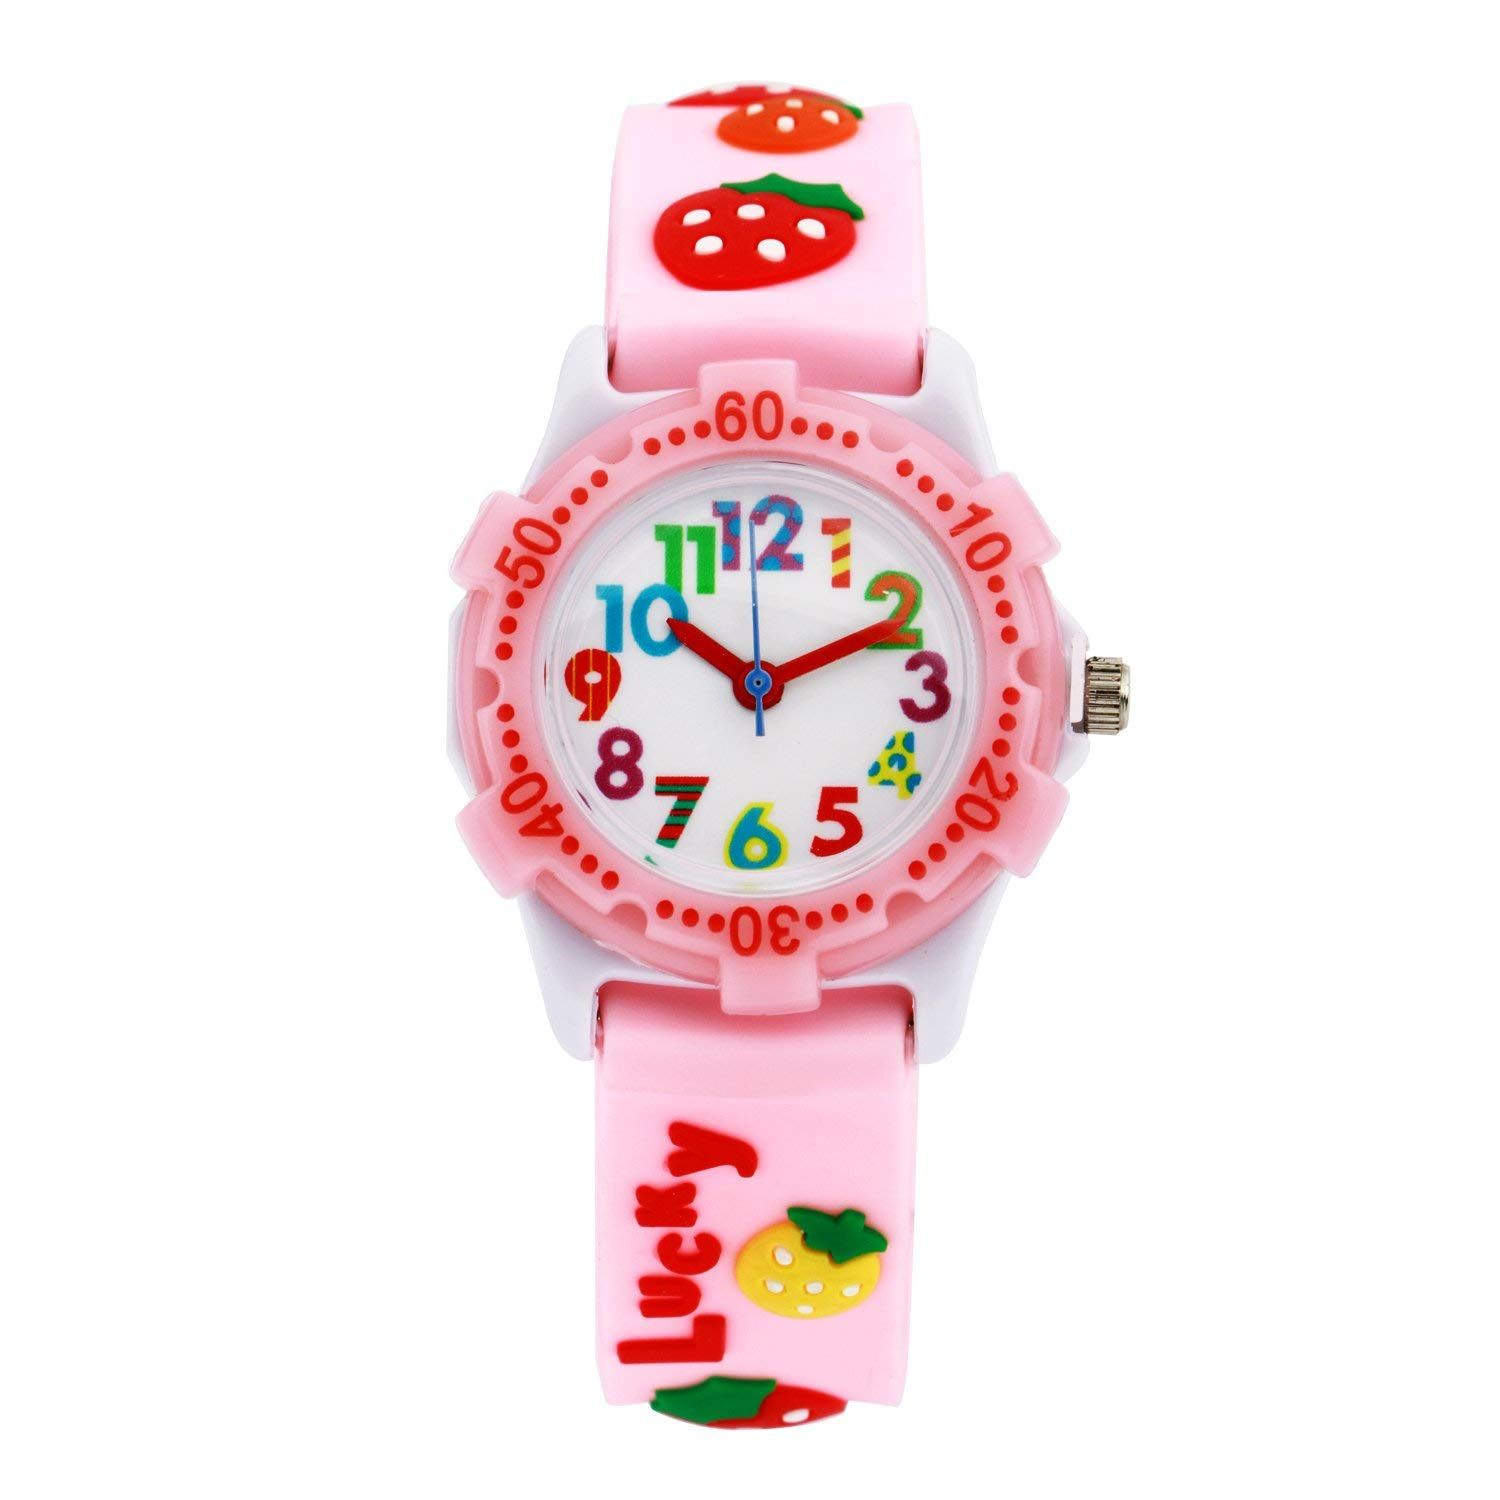 2018 Fashion Small Children Watch Kids Girls Boys Clock Child Wristwatch Quartz Steel Watch Wrist For Girl Boy Simple Gifts For Fast Shipping Watches